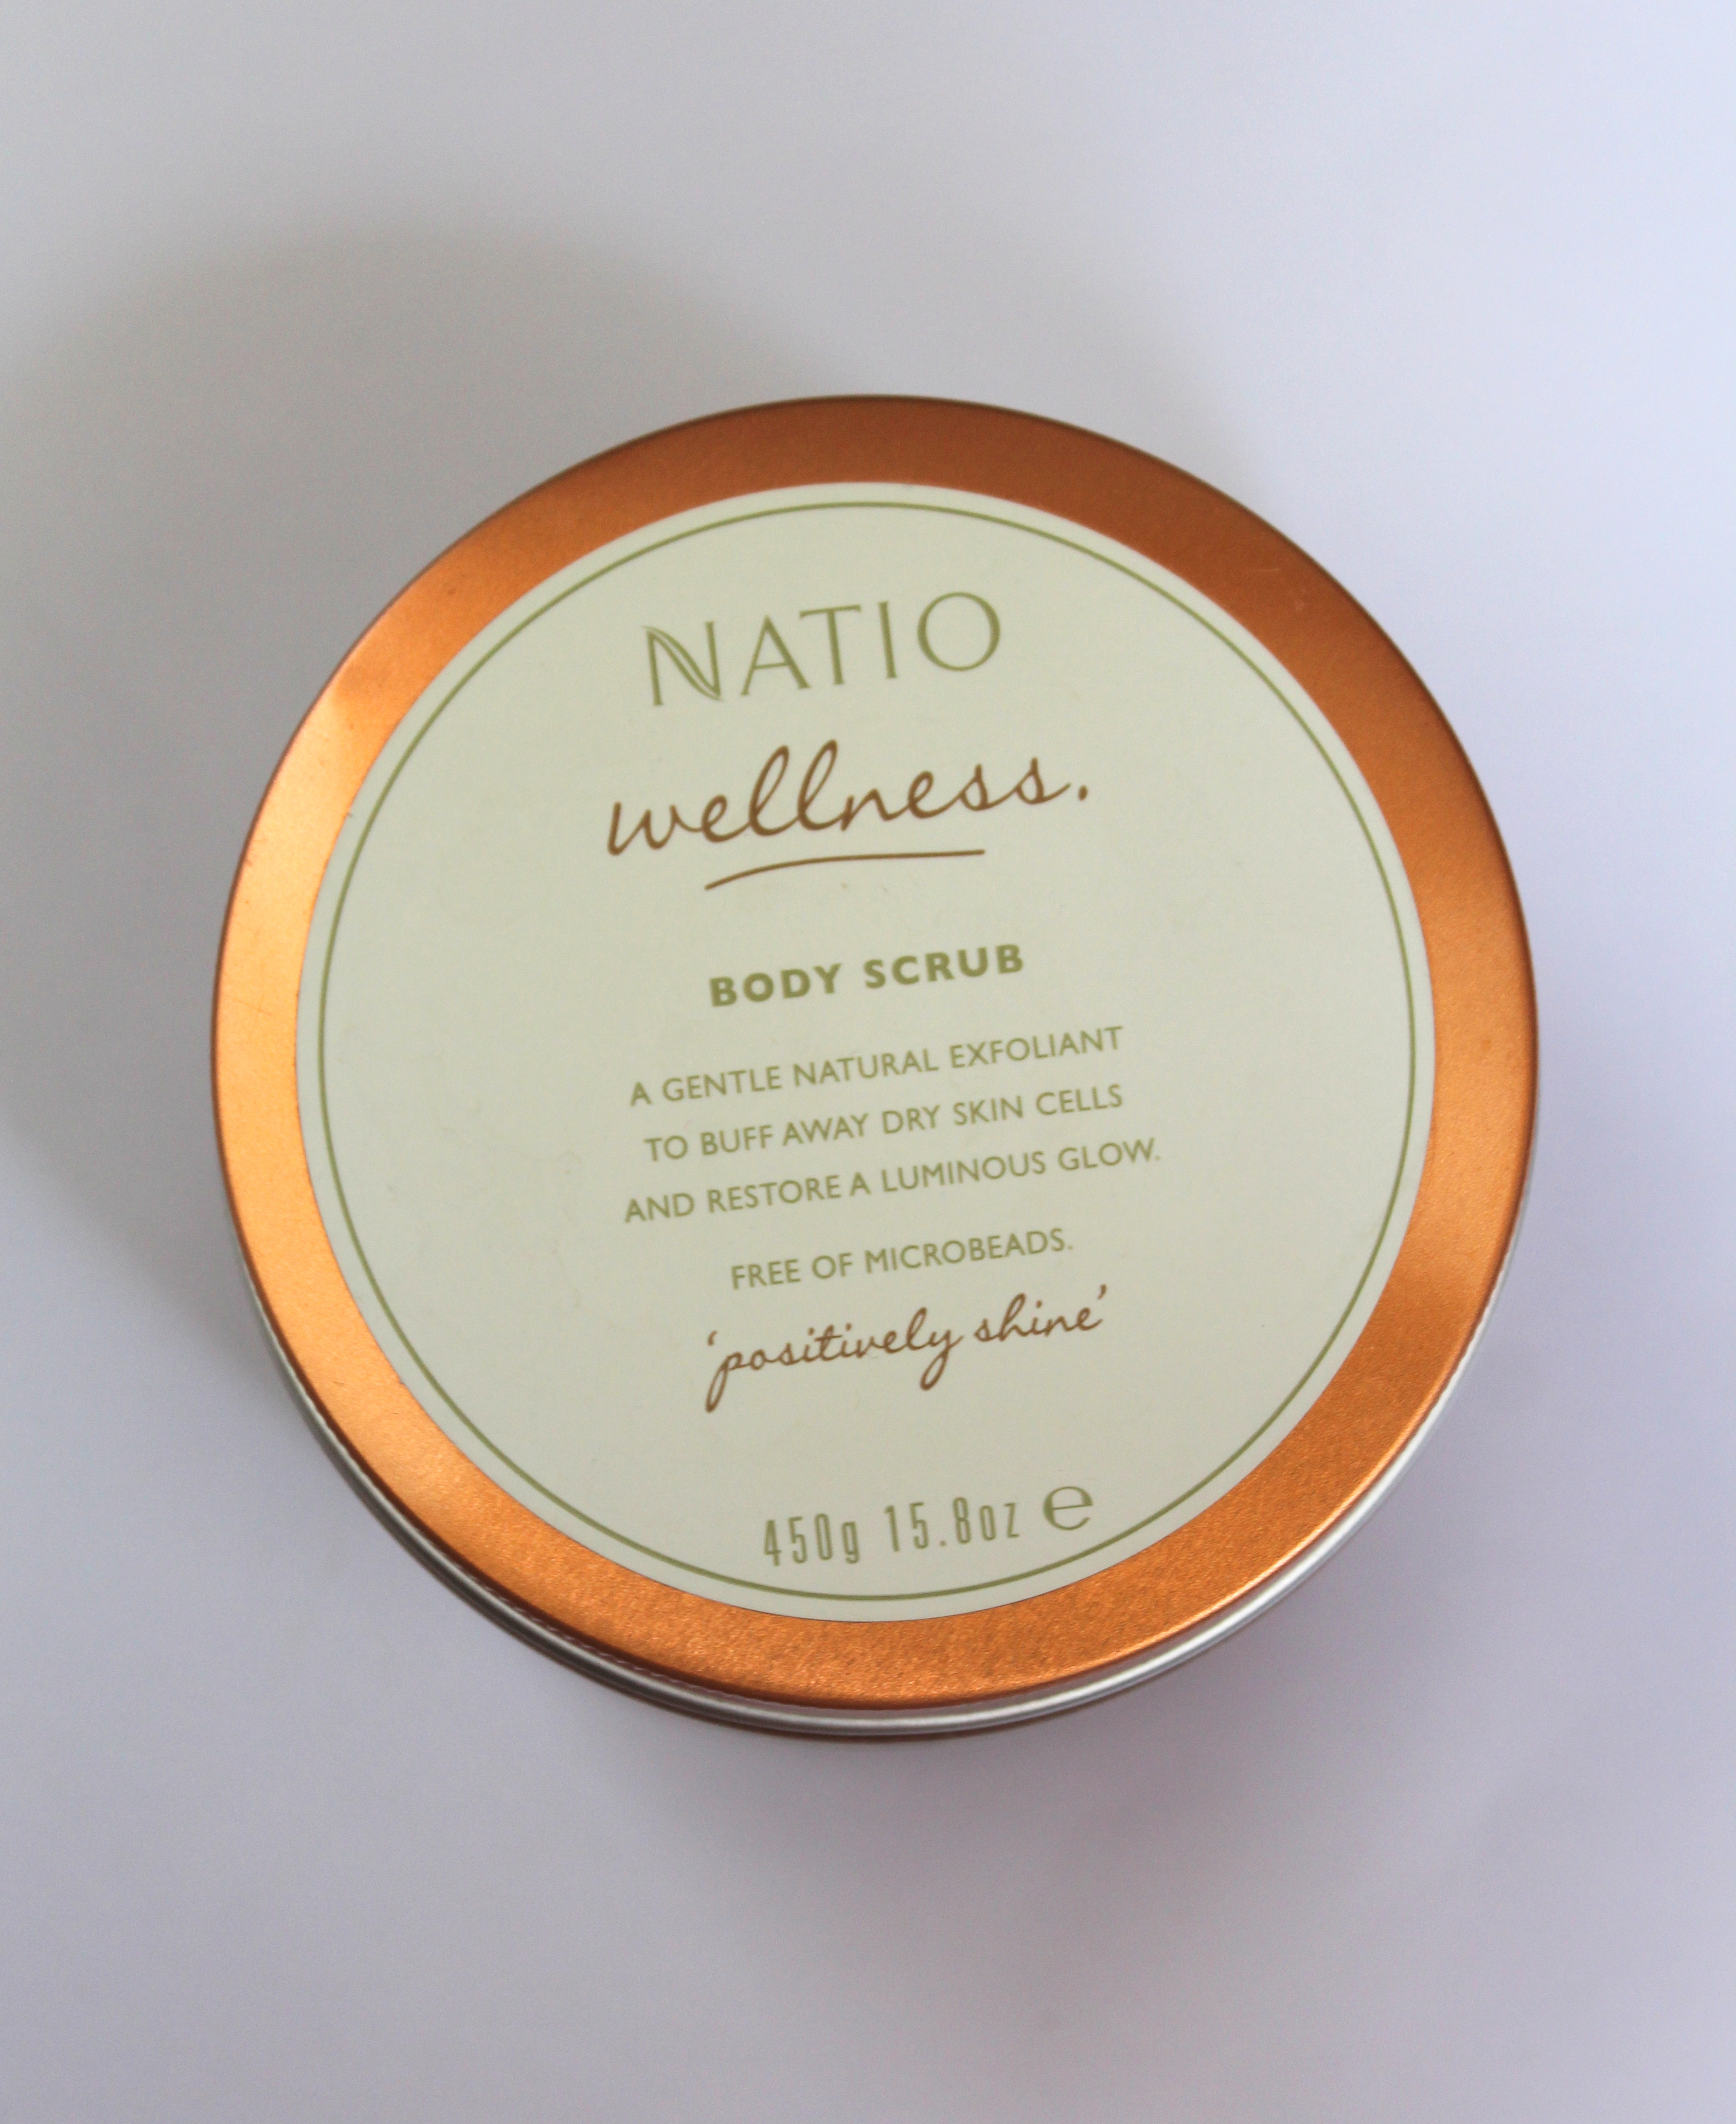 Natio Wellness Body Scrub review - HuesofMe Blog